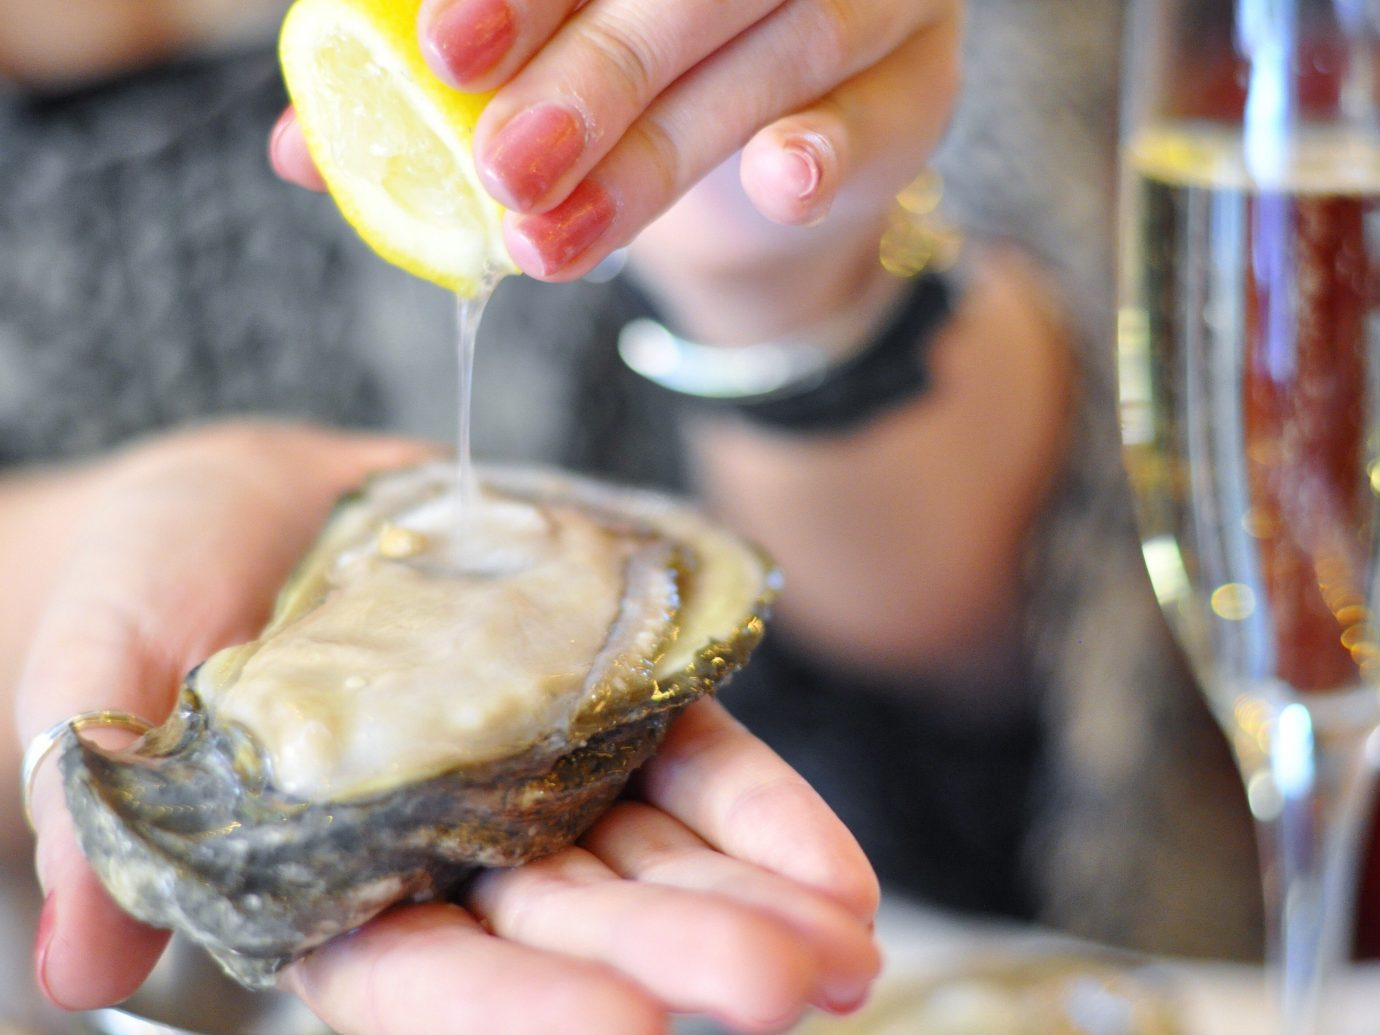 Food + Drink person oyster holding food hand clams oysters mussels and scallops Seafood animal source foods half mussel clam snack food eaten close